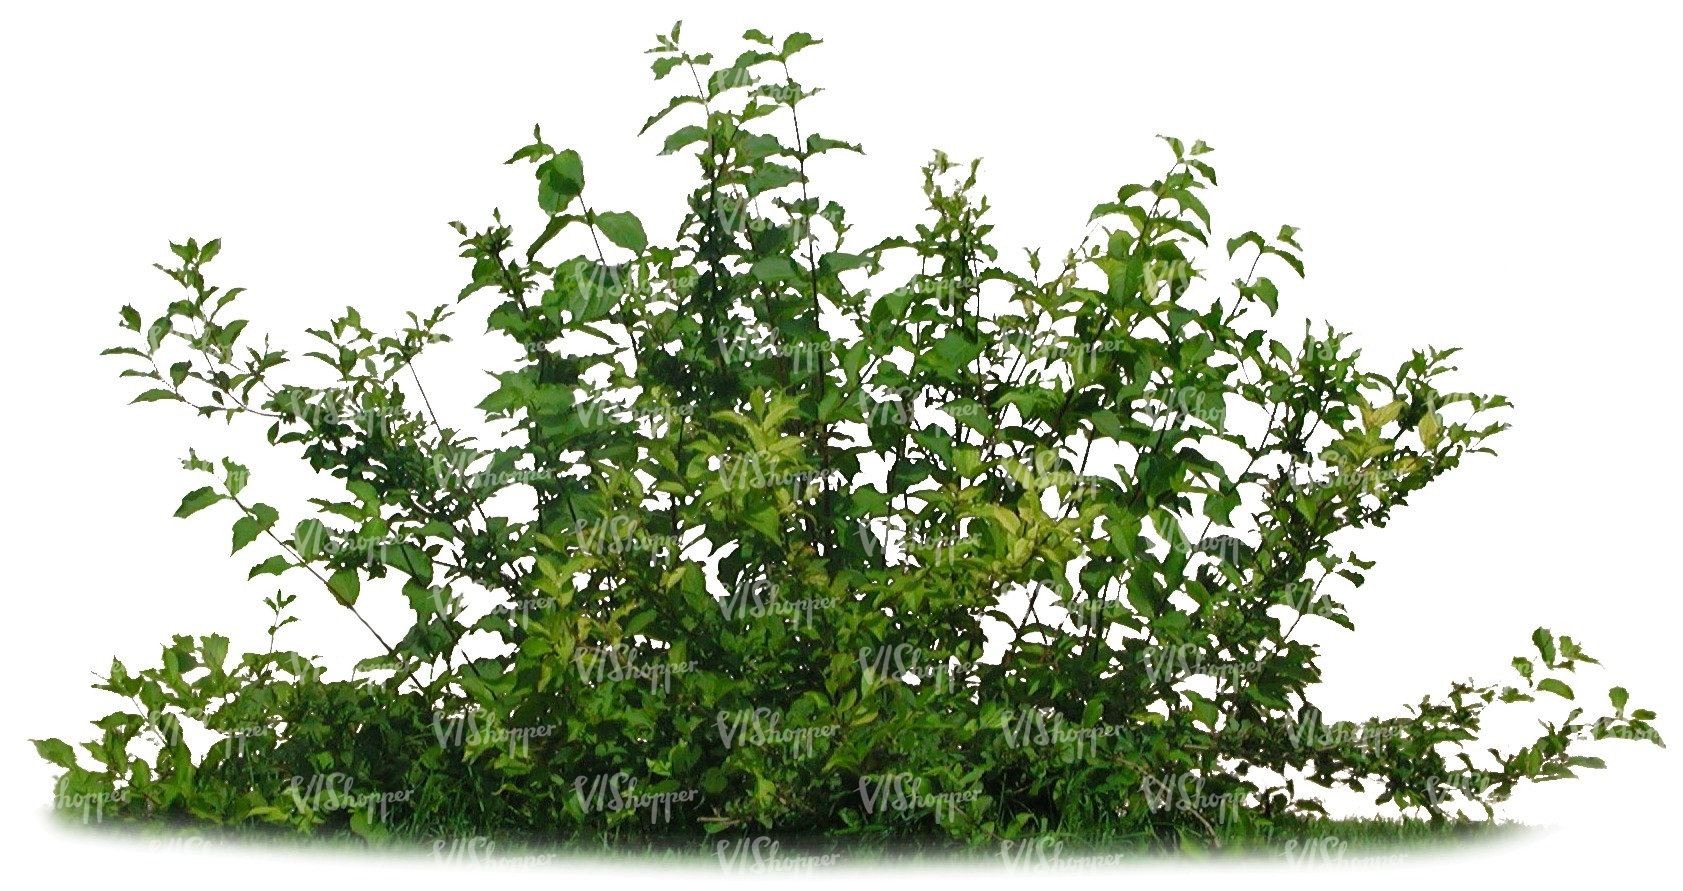 Cut out small bush cut out trees and plants vishopper for Small bushy trees